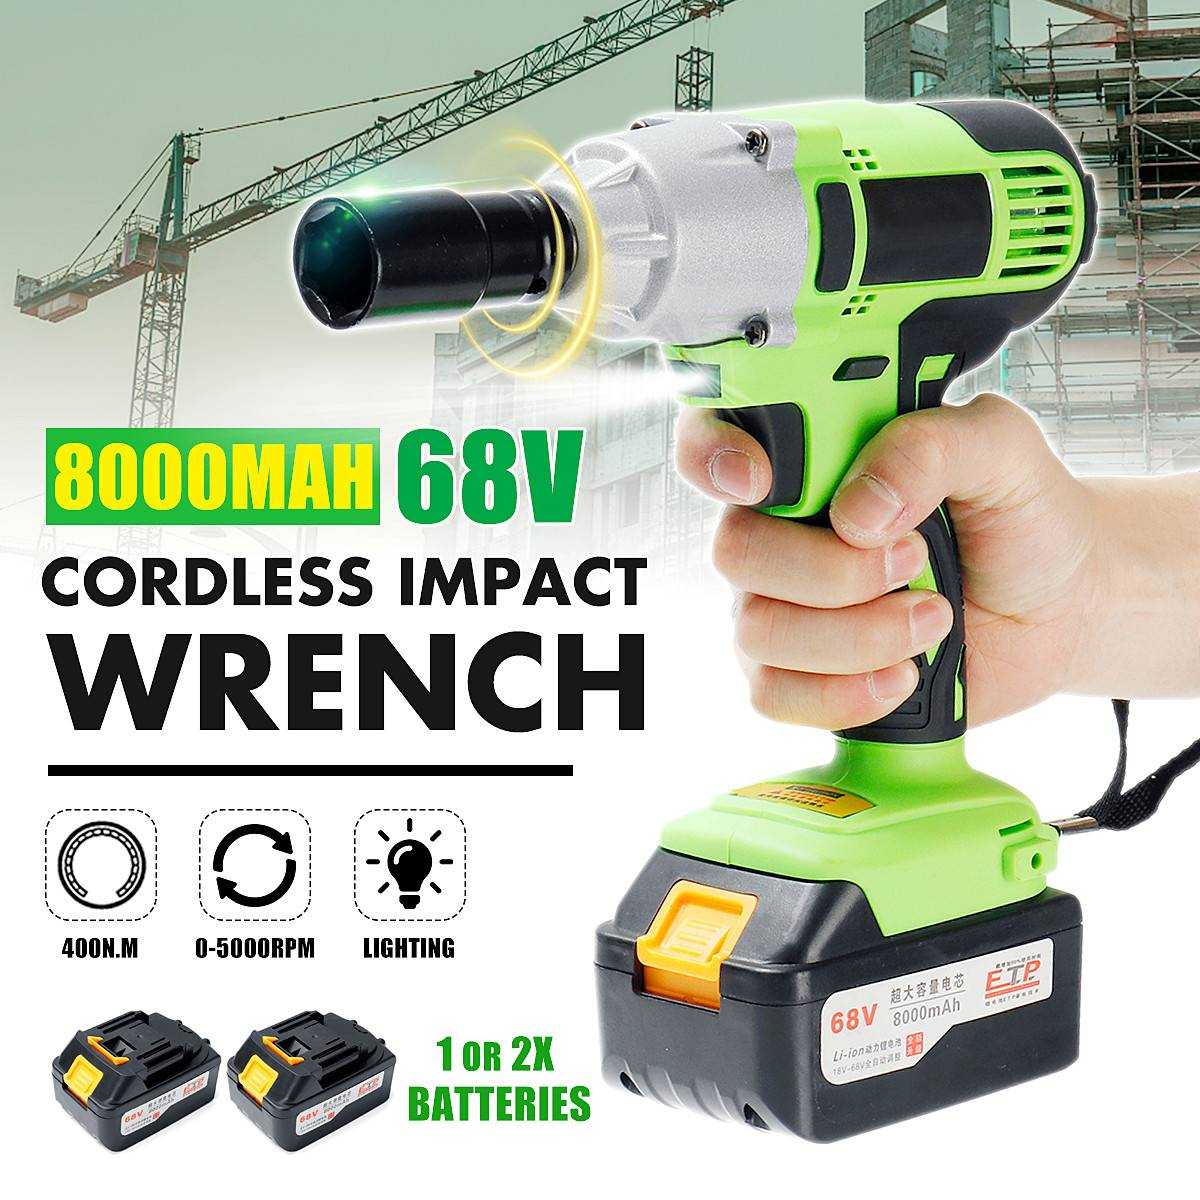 Diy Home 400n M Max Brushless Cordless Electric Impact Socket Wrench 68v 8000mah Driver Hand Drill Installation Tools In Wrenches From